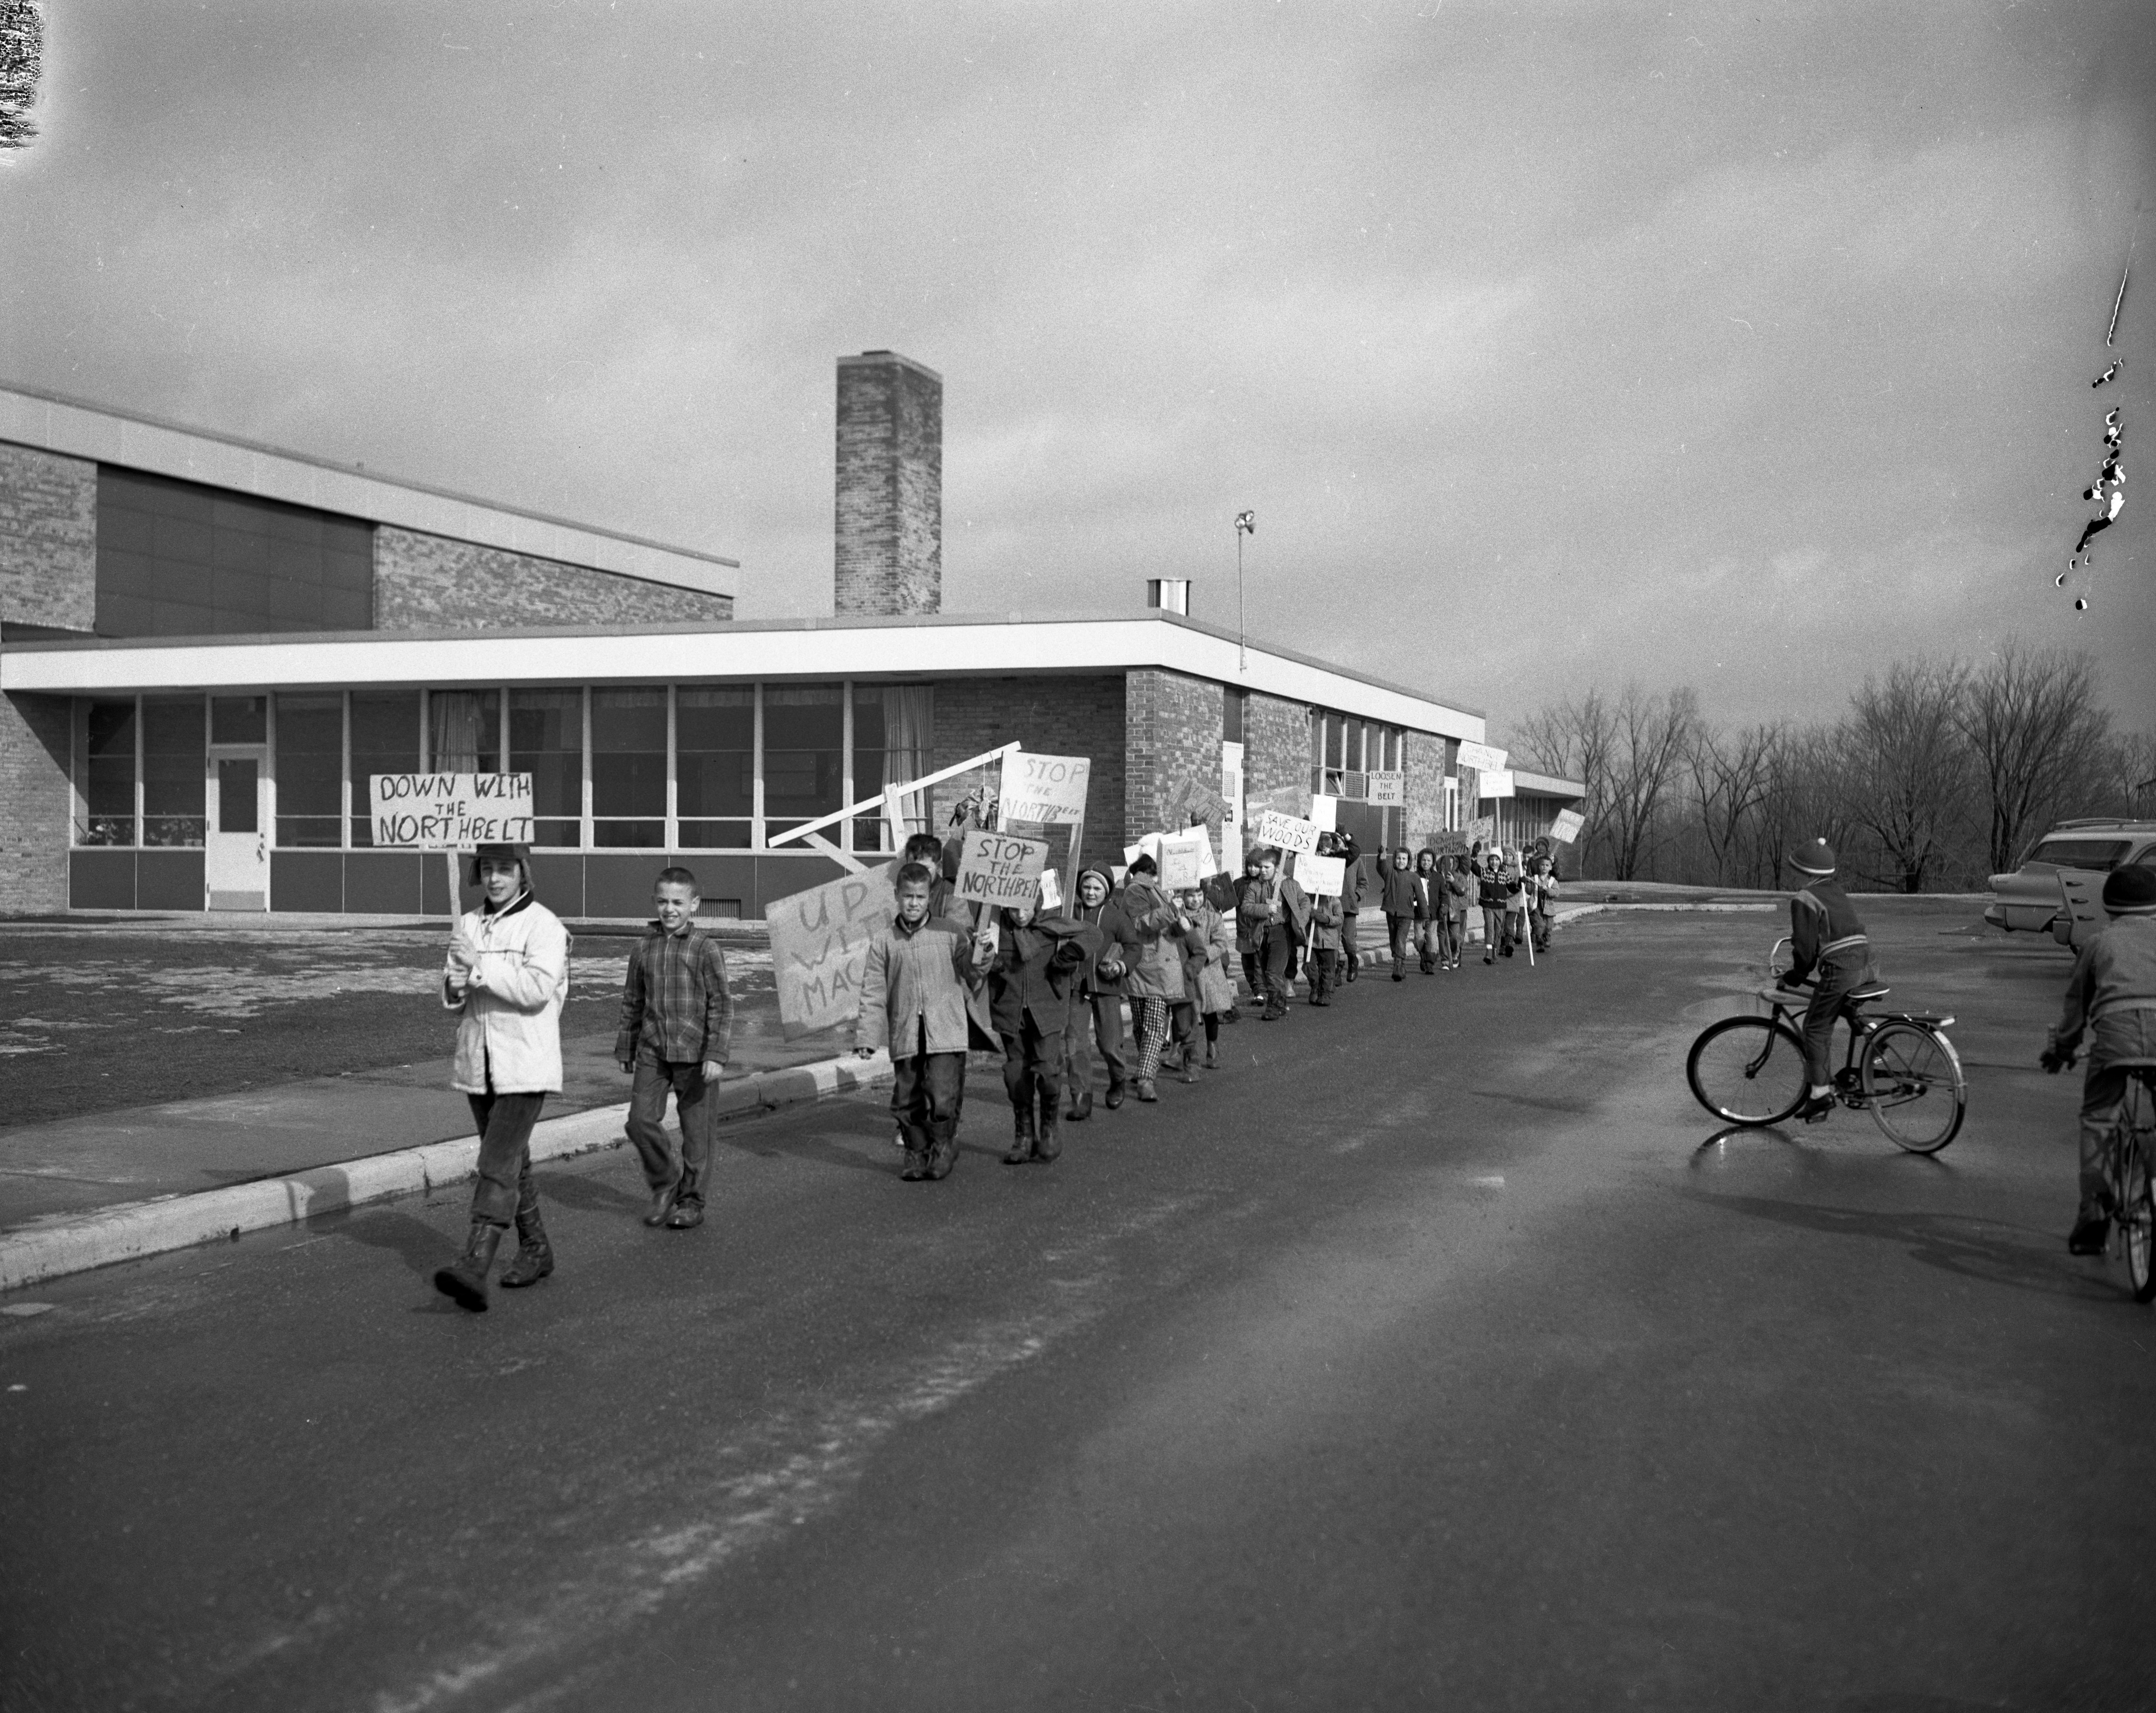 Students at Wines School protest the Northbelt bypass, March, 1962 image